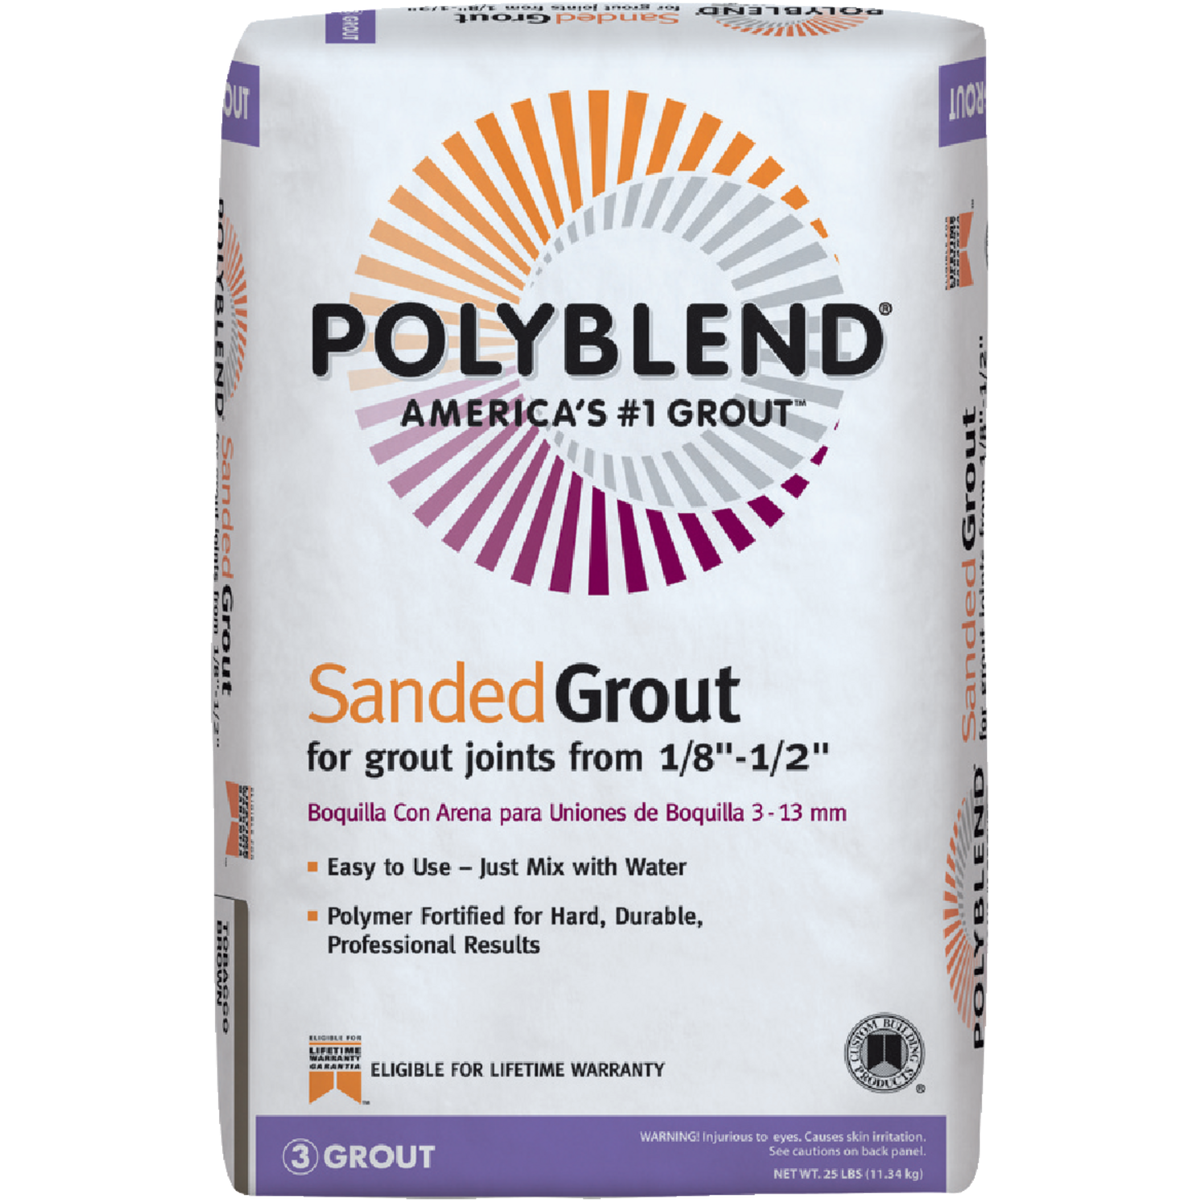 Polyblend 7Lb New Taup Sandd Grout